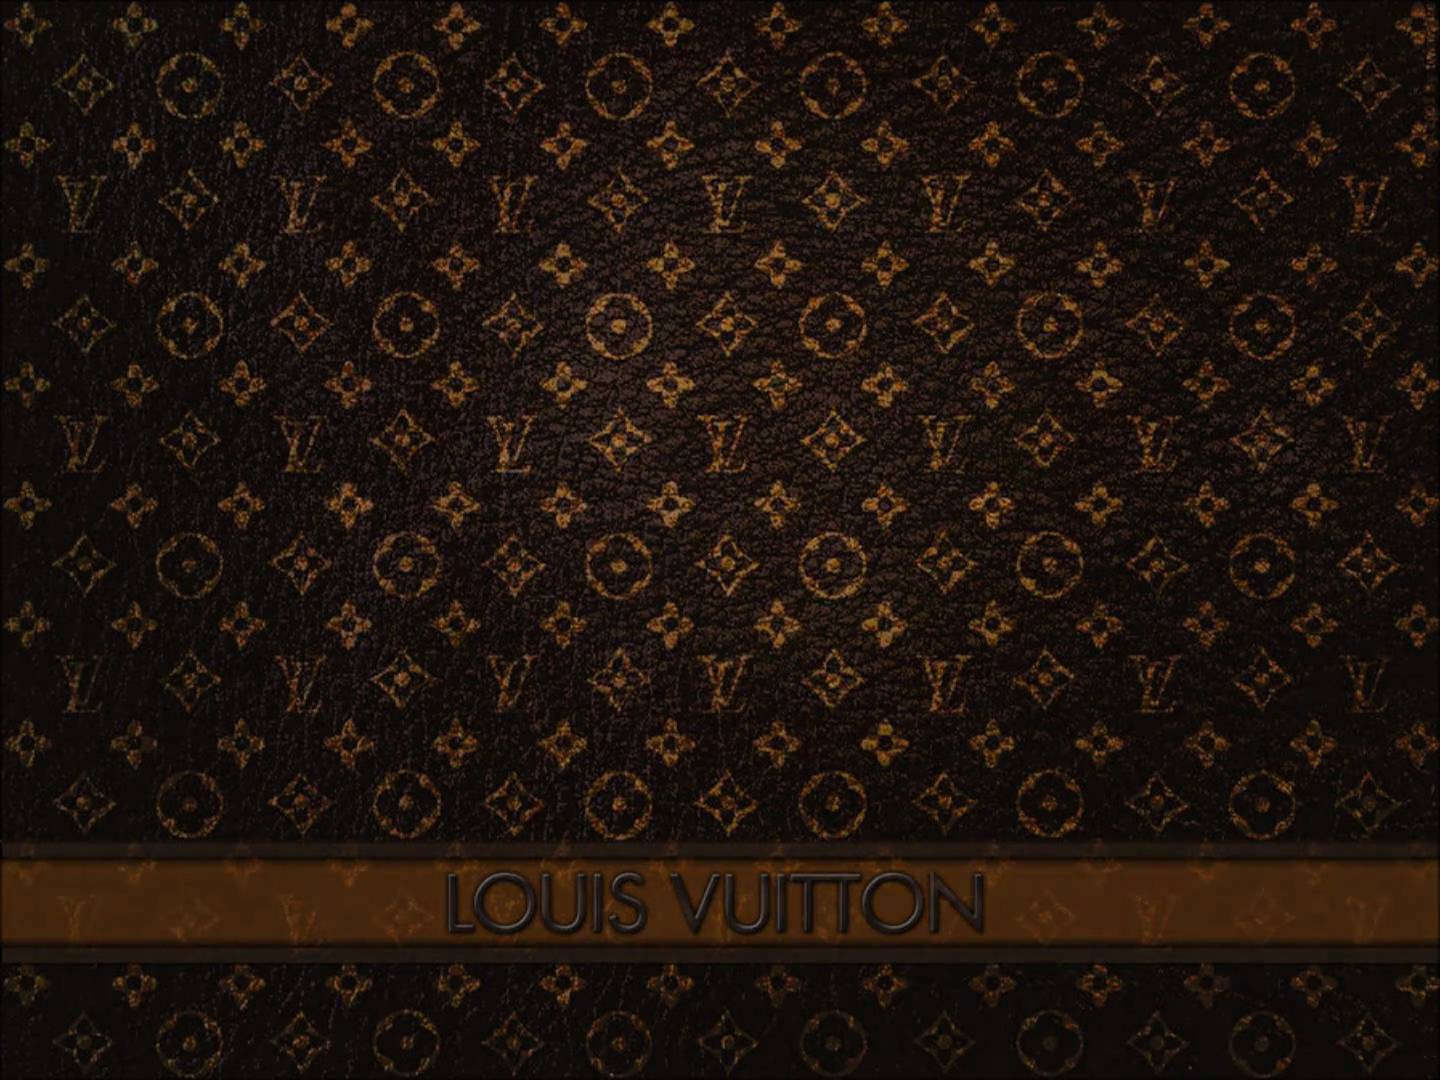 Balloons 3d Live Wallpaper Louis Vuitton Free Printable Papers Oh My Fiesta For